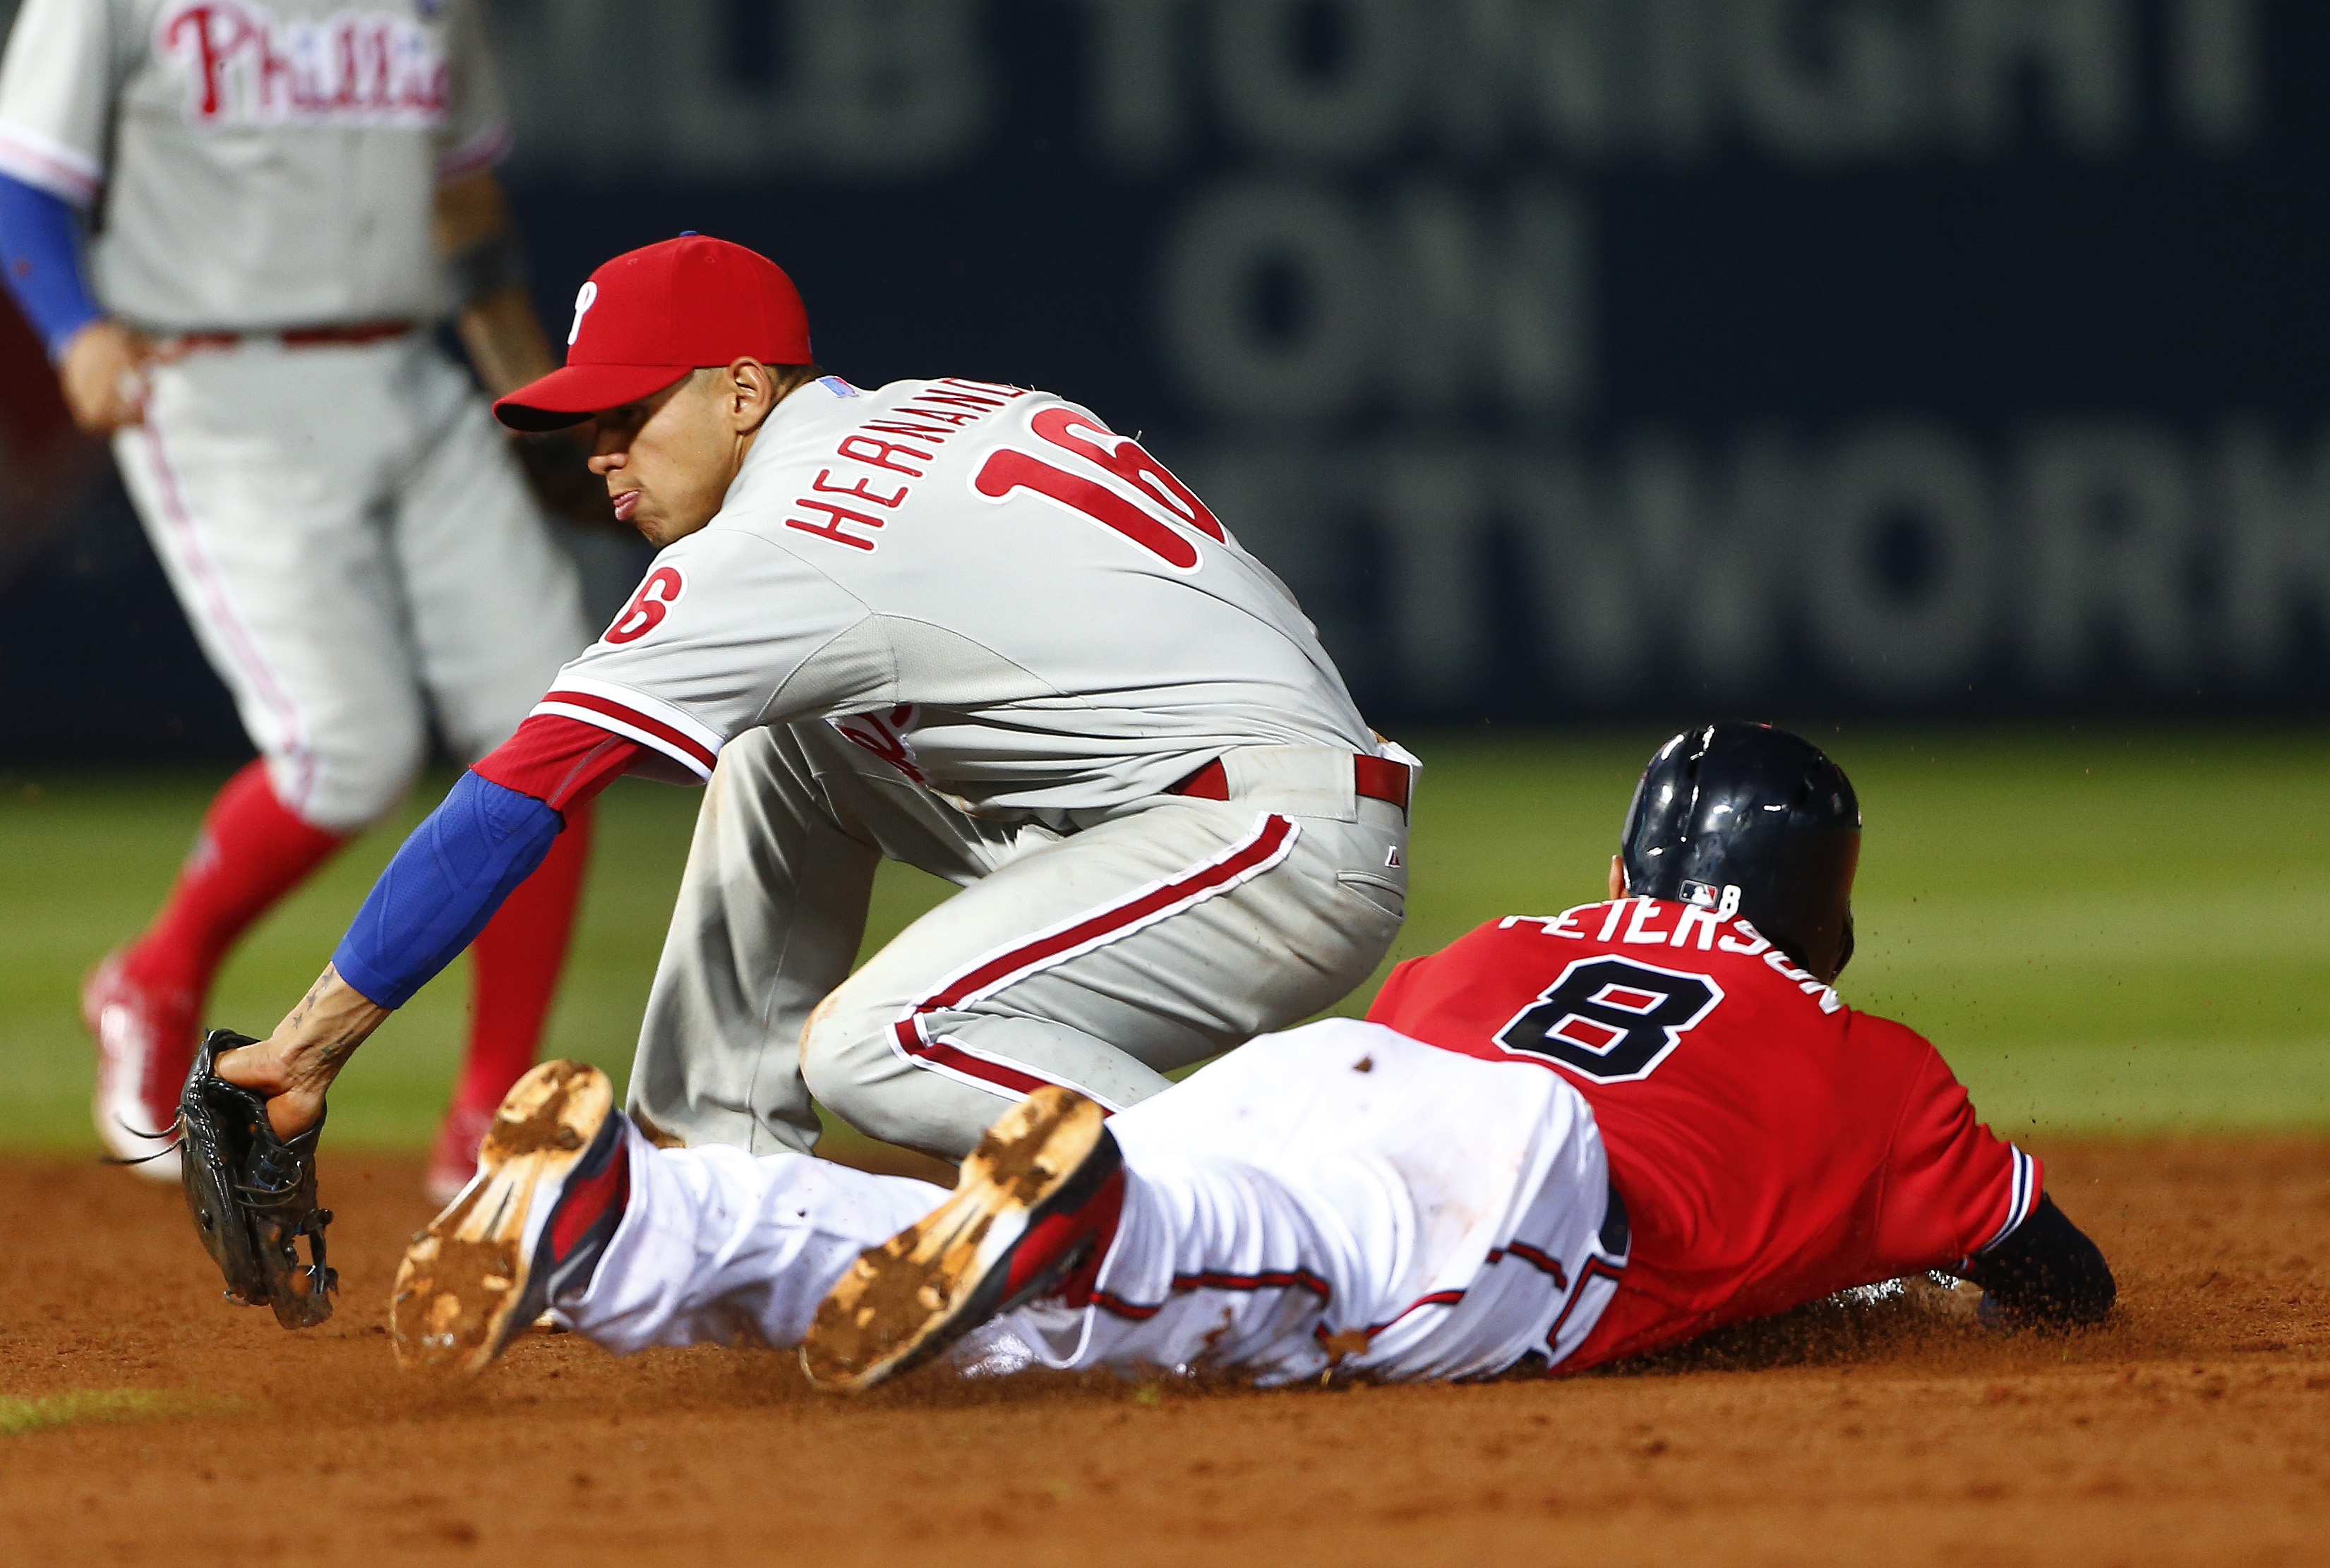 Atlanta Braves' Jace Peterson (8) steals second base as Philadelphia Phillies third baseman Cesar Hernandez (16) handles the late throw in the sixth inning of a baseball game Wednesday, May 6, 2015, in Atlanta. (AP Photo/John Bazemore)